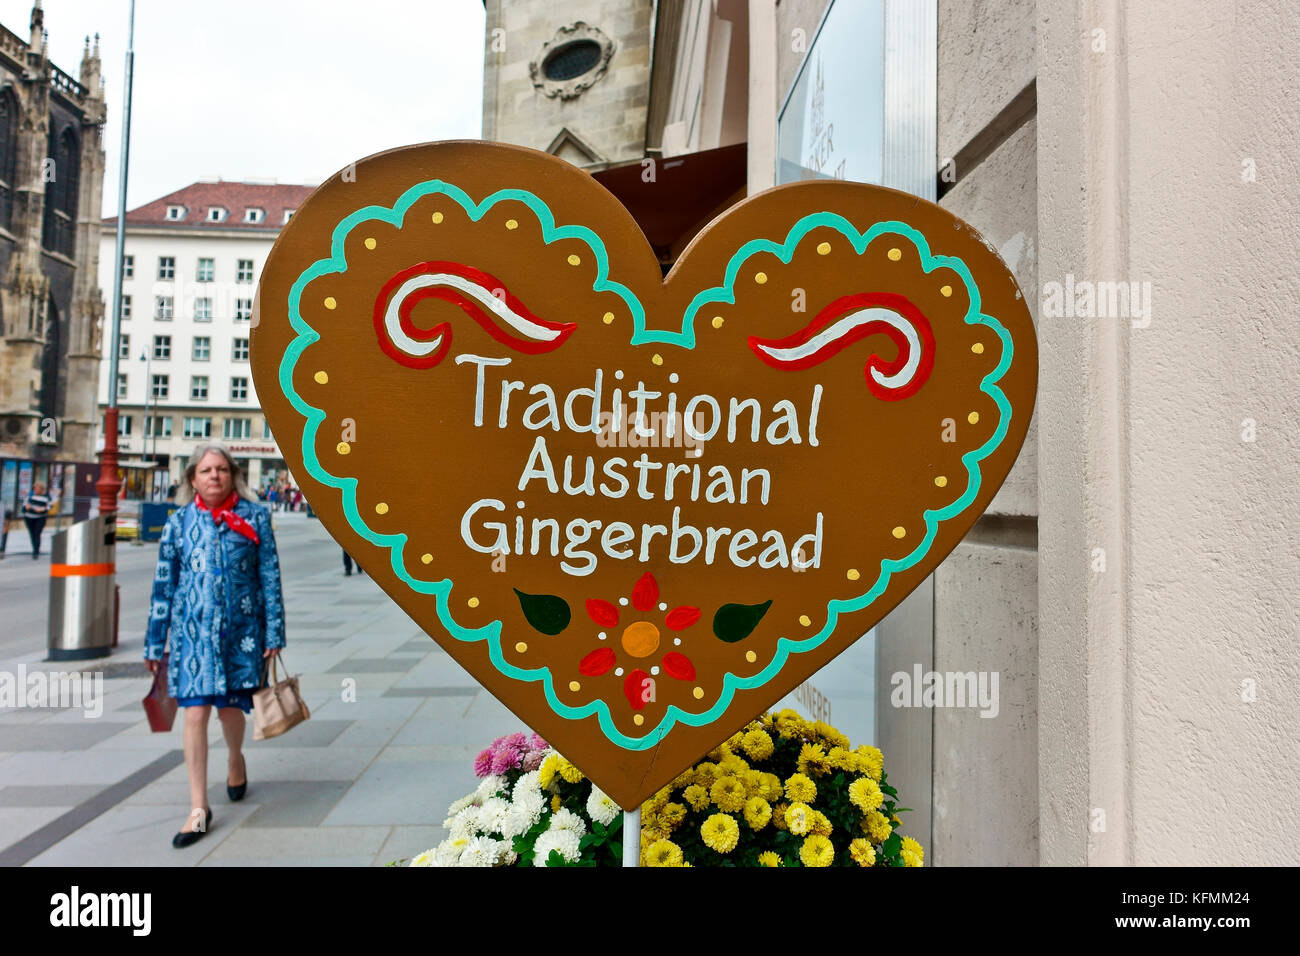 Traditional Austrian Gingerbread Shop Gingerbread Heart Shaped Sign